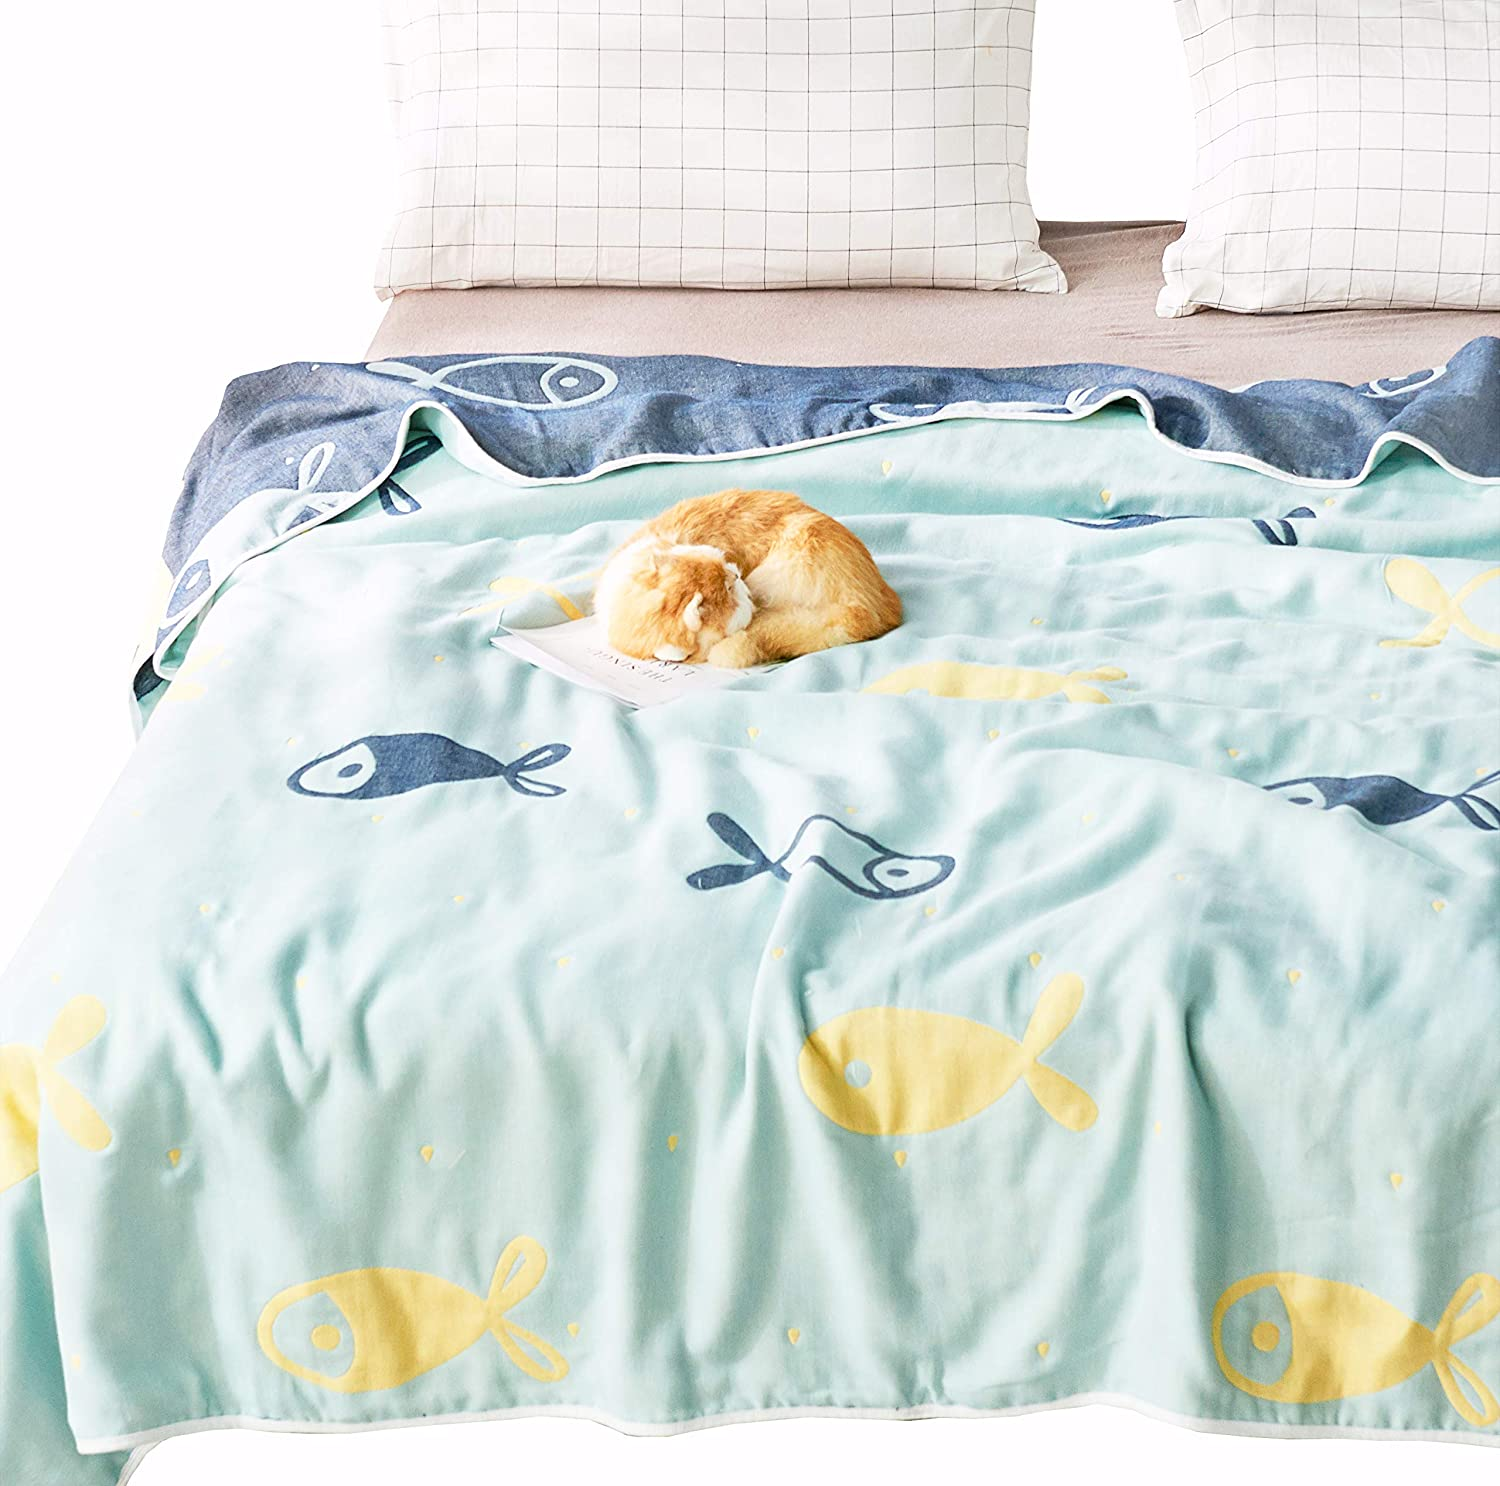 J-pinno Fish Muslin Blanket Reversible Cozy Soft 100% Cotton 6 Layer Quilt Bed Blanket Throw Sofa Couch Toddler Kids Boys Cartoon Travel Coverlet Sheet (Fish, F/Q 76